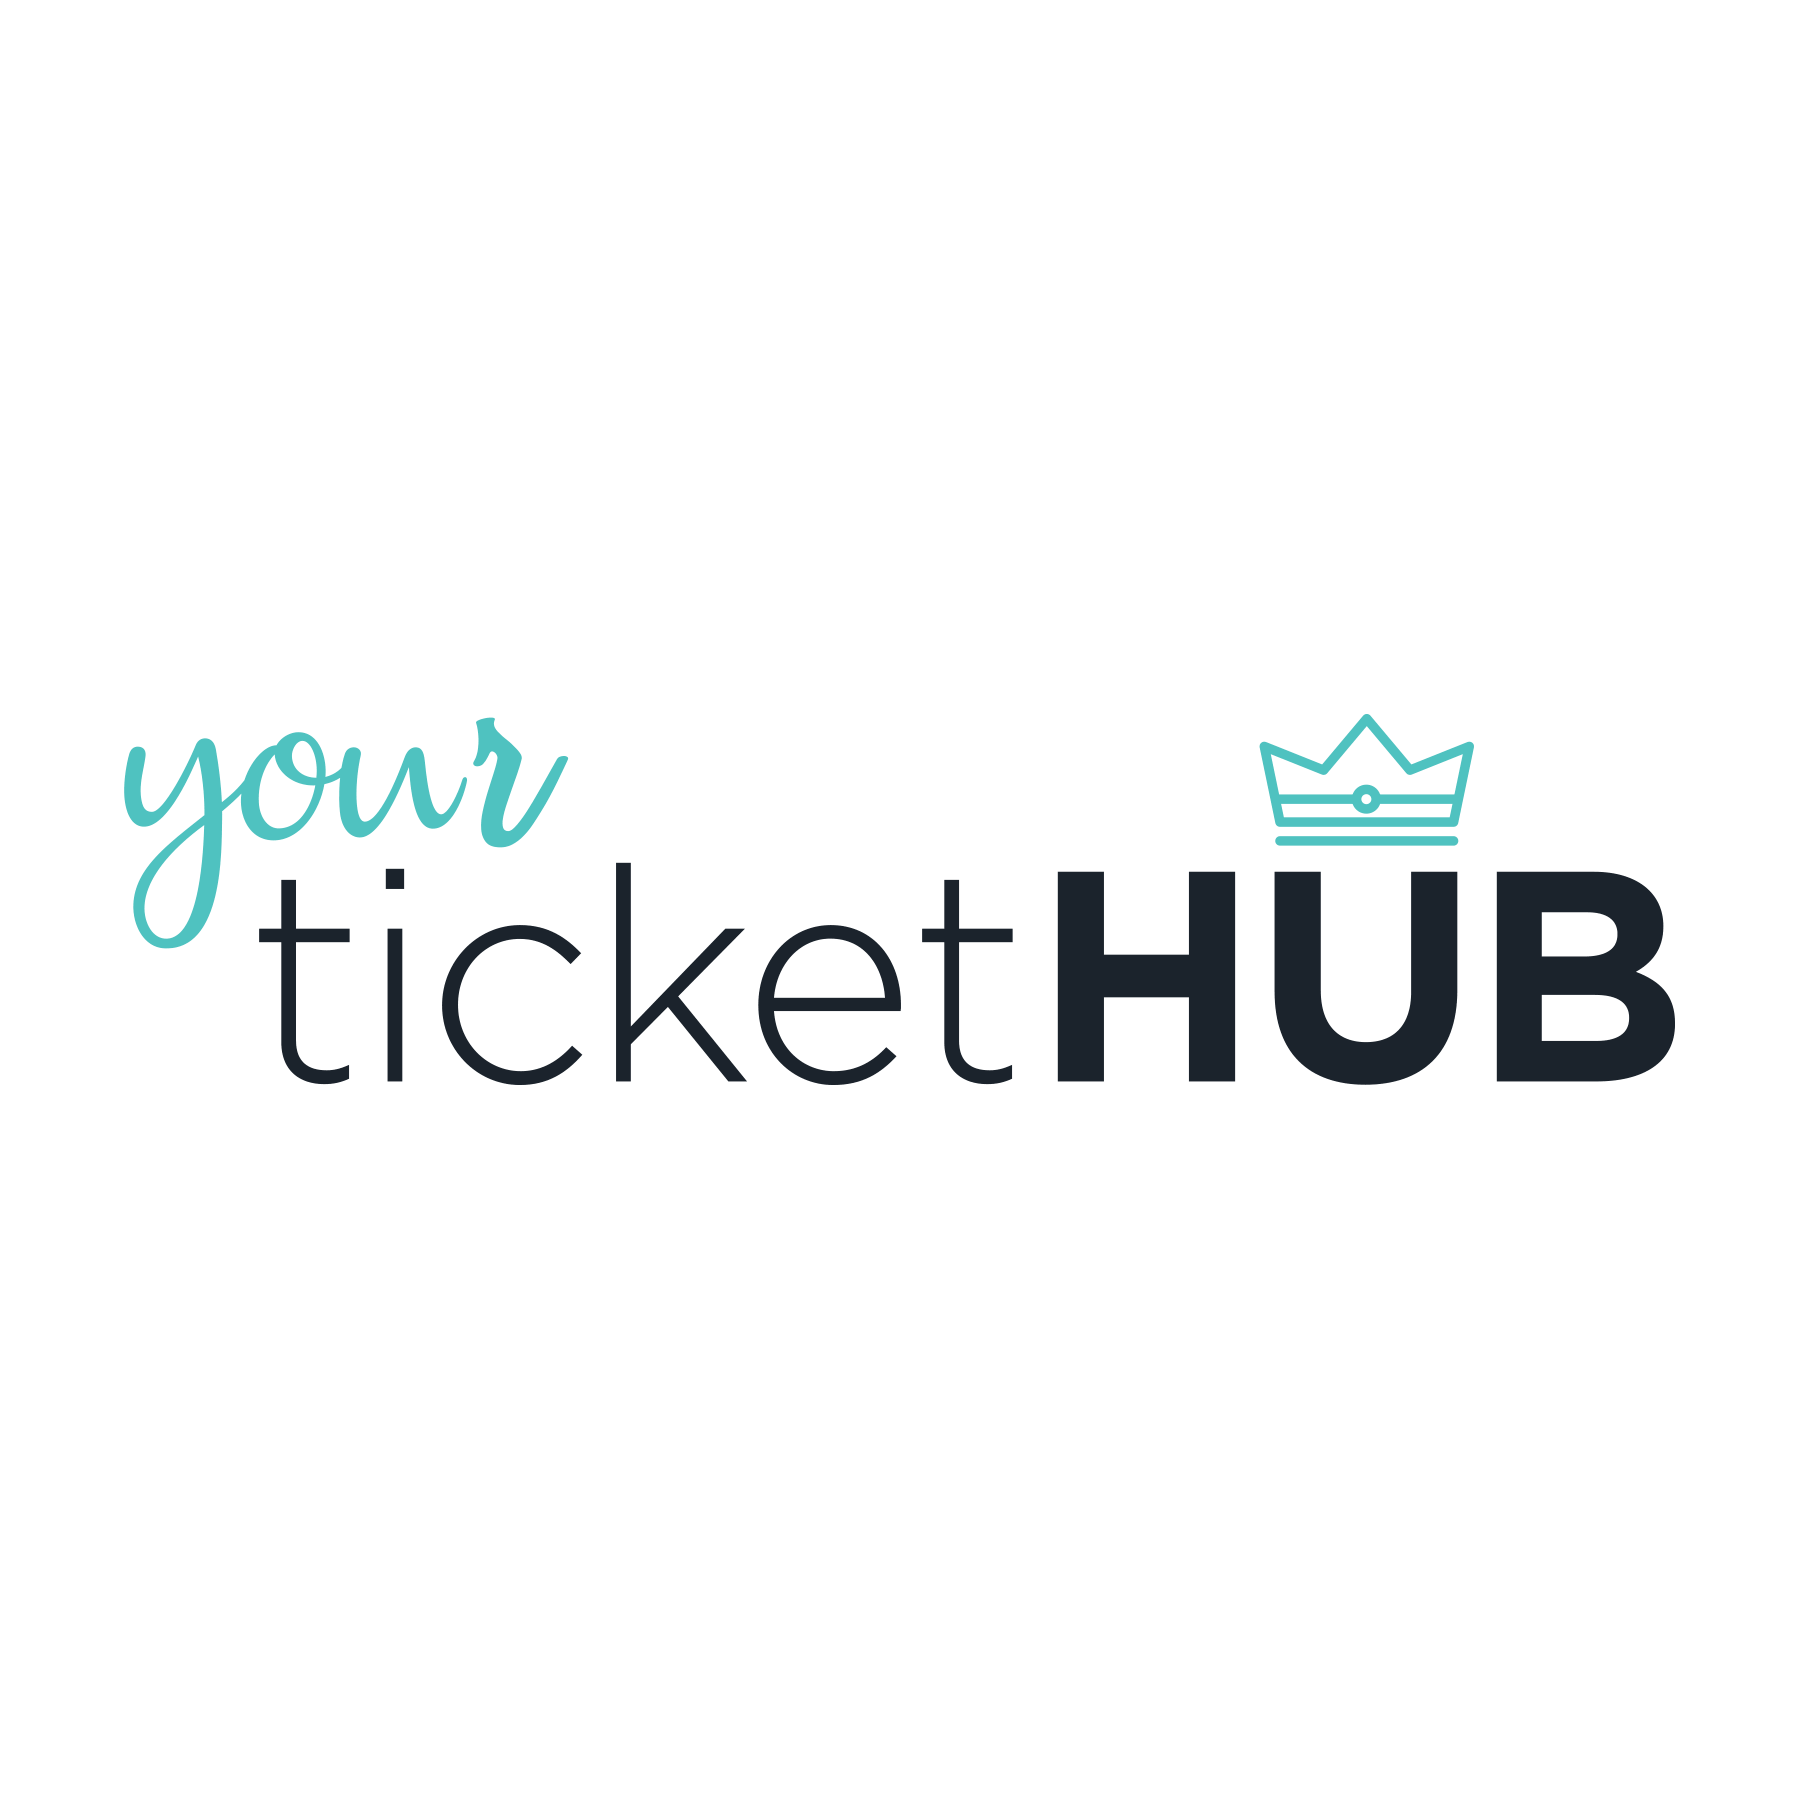 Your Ticket Hub logo